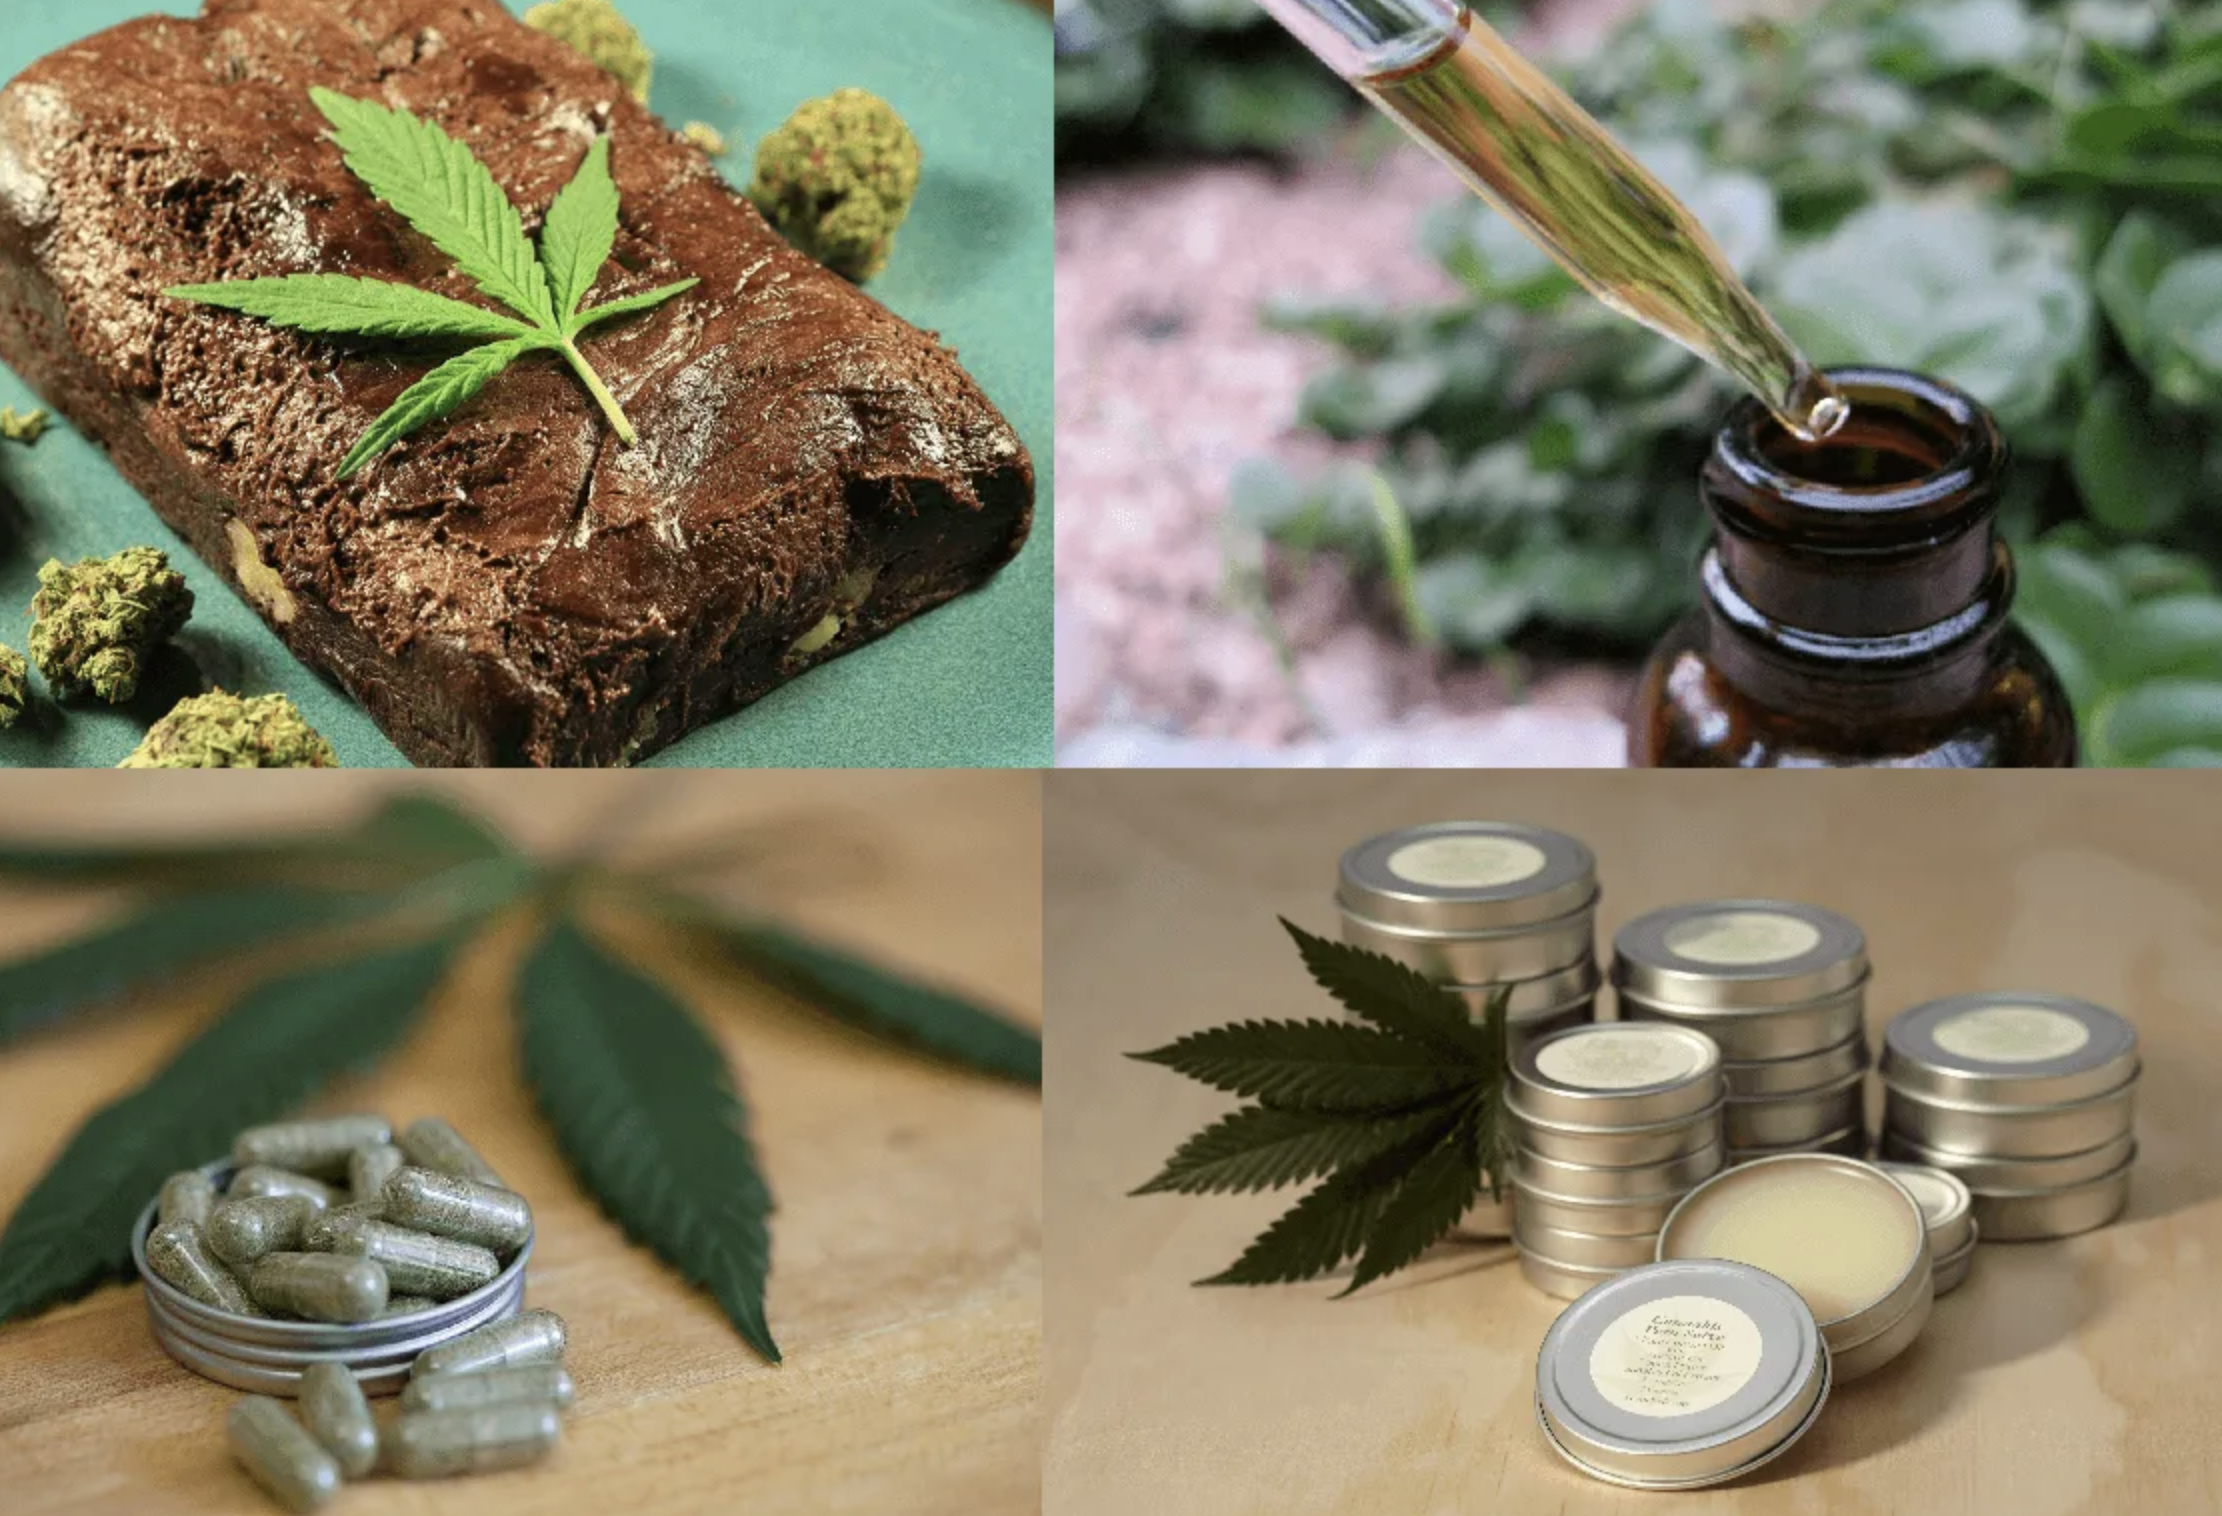 Alternative ways to use cannabis